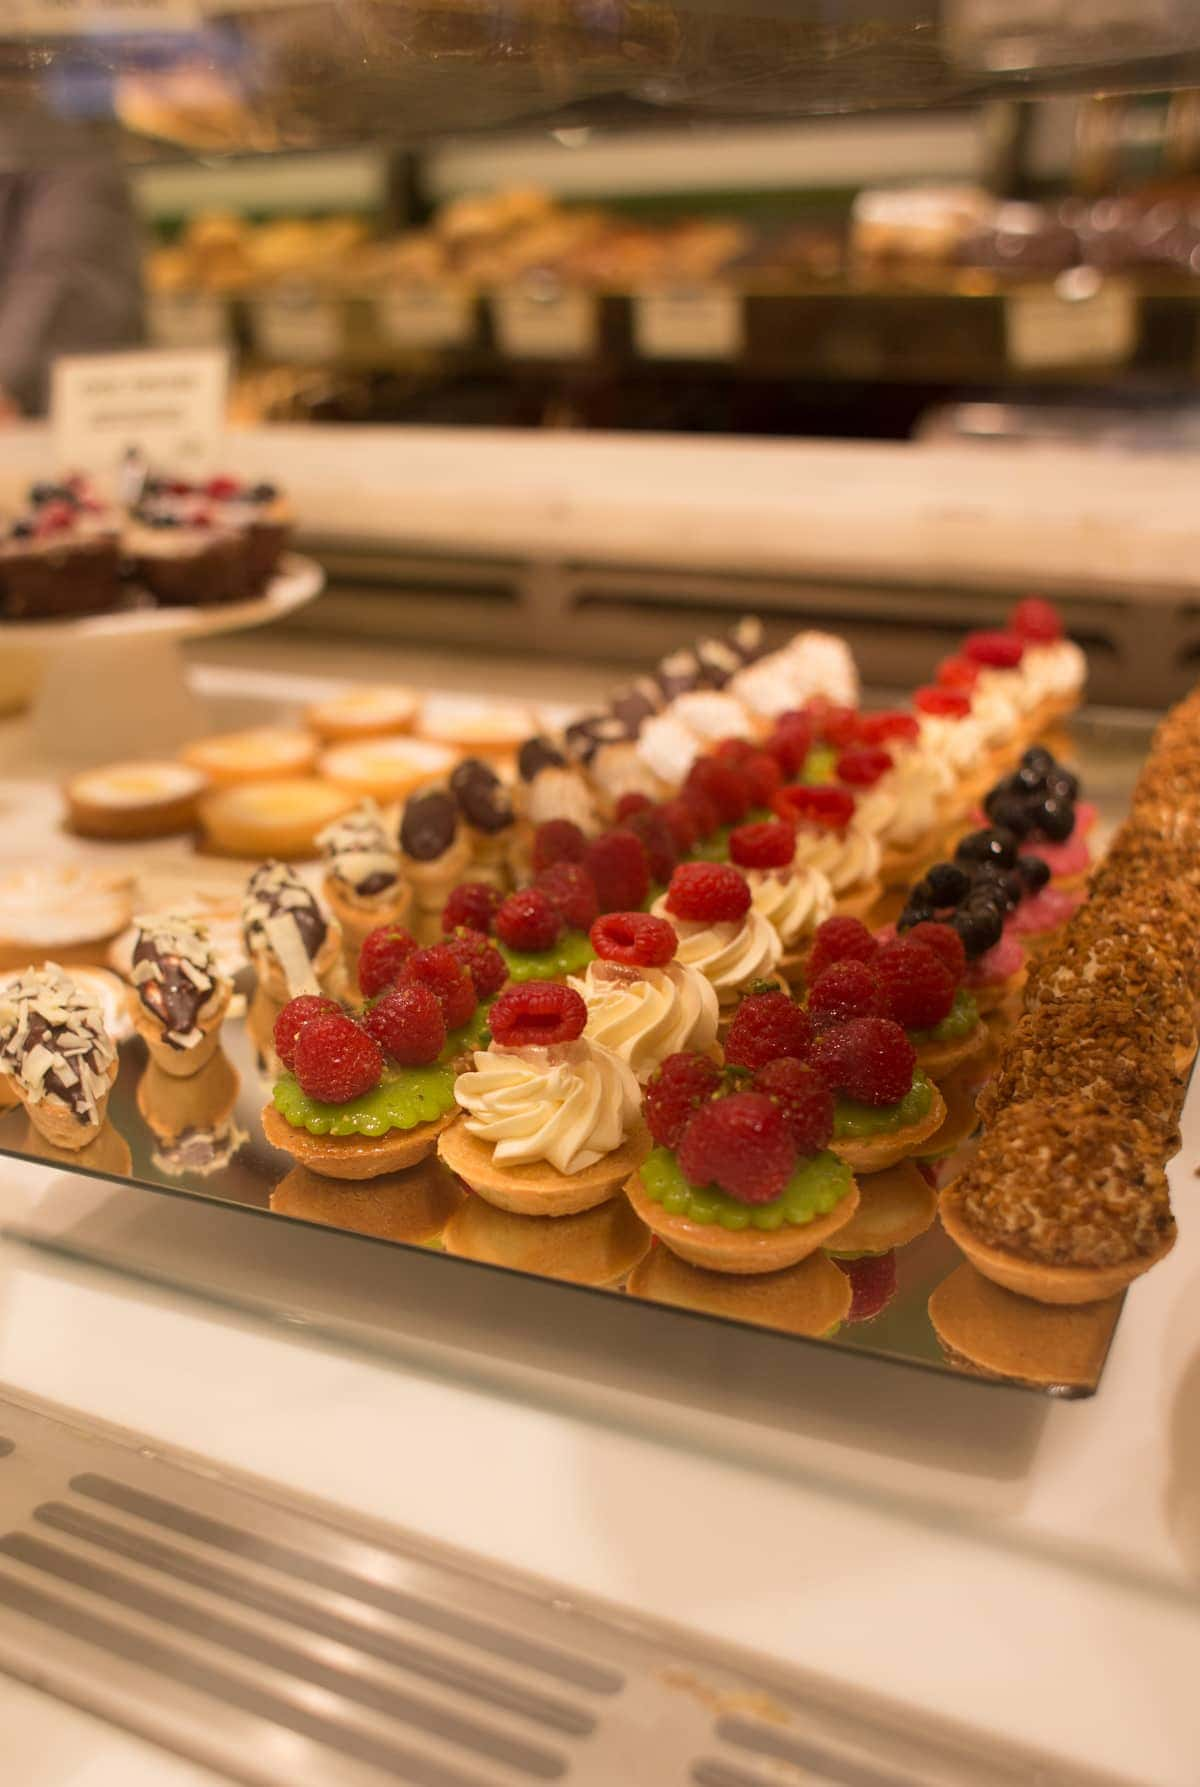 Pastries on display at an Amsterdam bakery